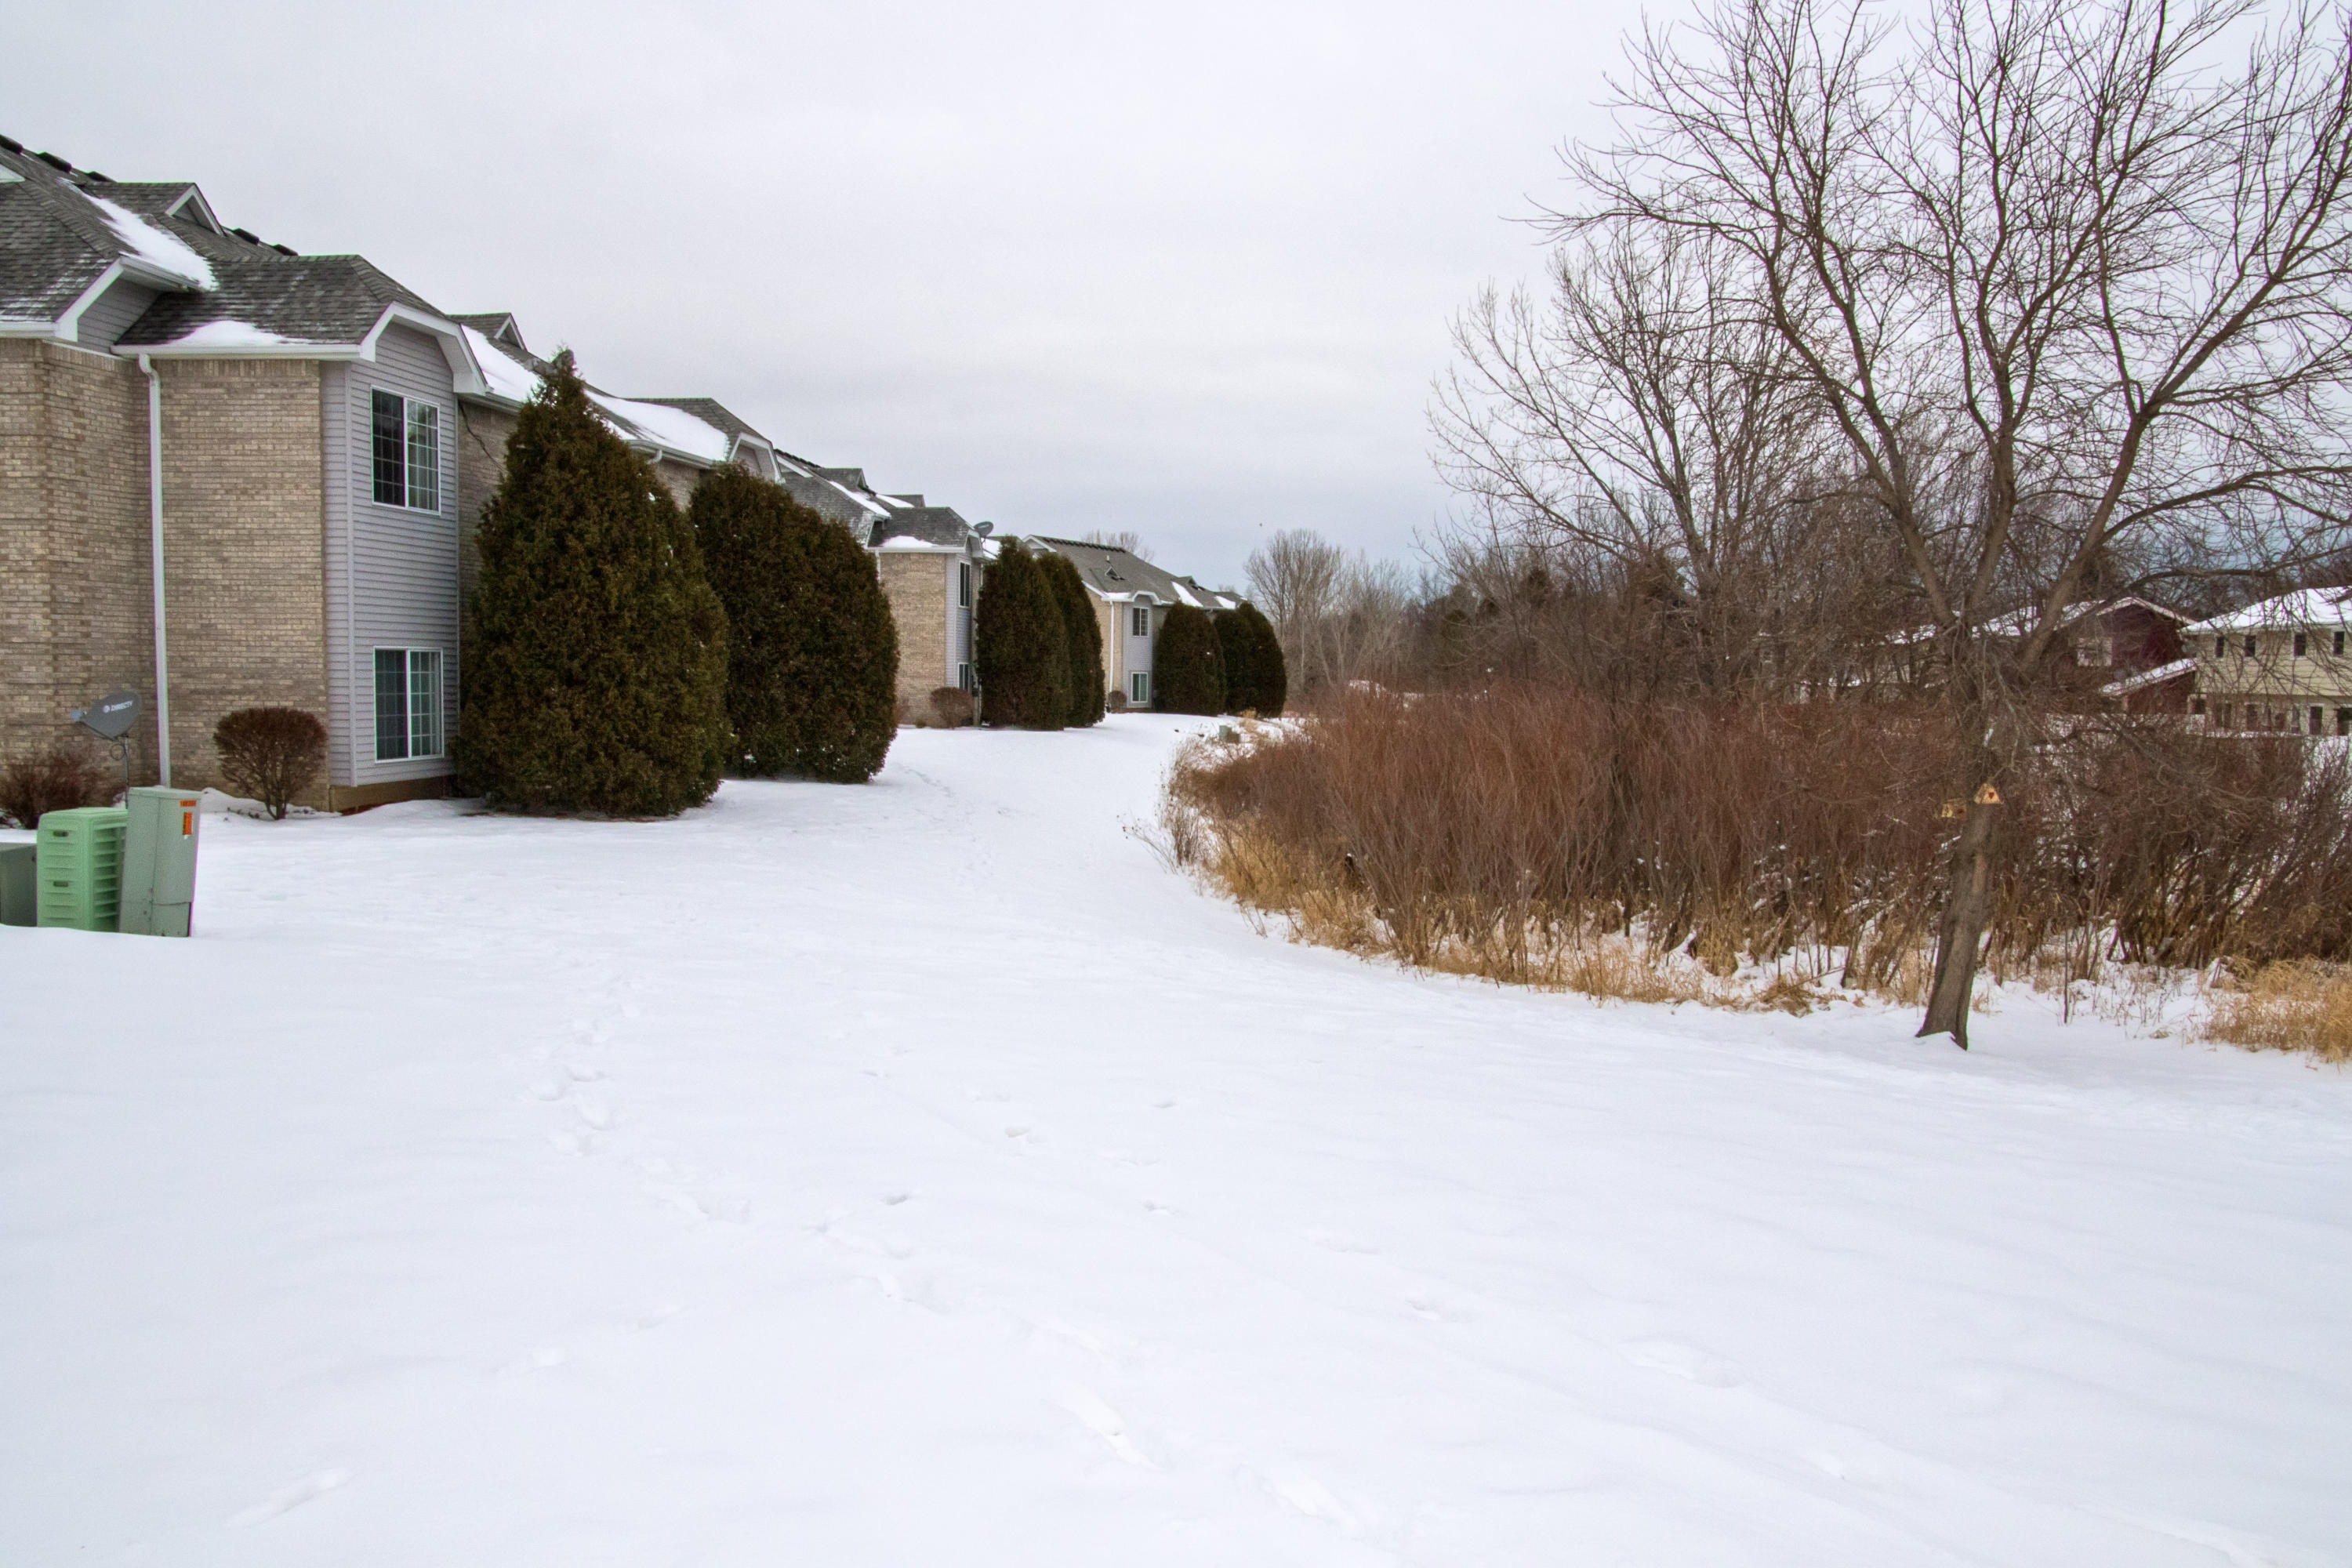 6924 Rolling Meadows CT, Oak Creek, Wisconsin 53154, 2 Bedrooms Bedrooms, 4 Rooms Rooms,2 BathroomsBathrooms,Condominium,For Sale,Rolling Meadows CT,1723519